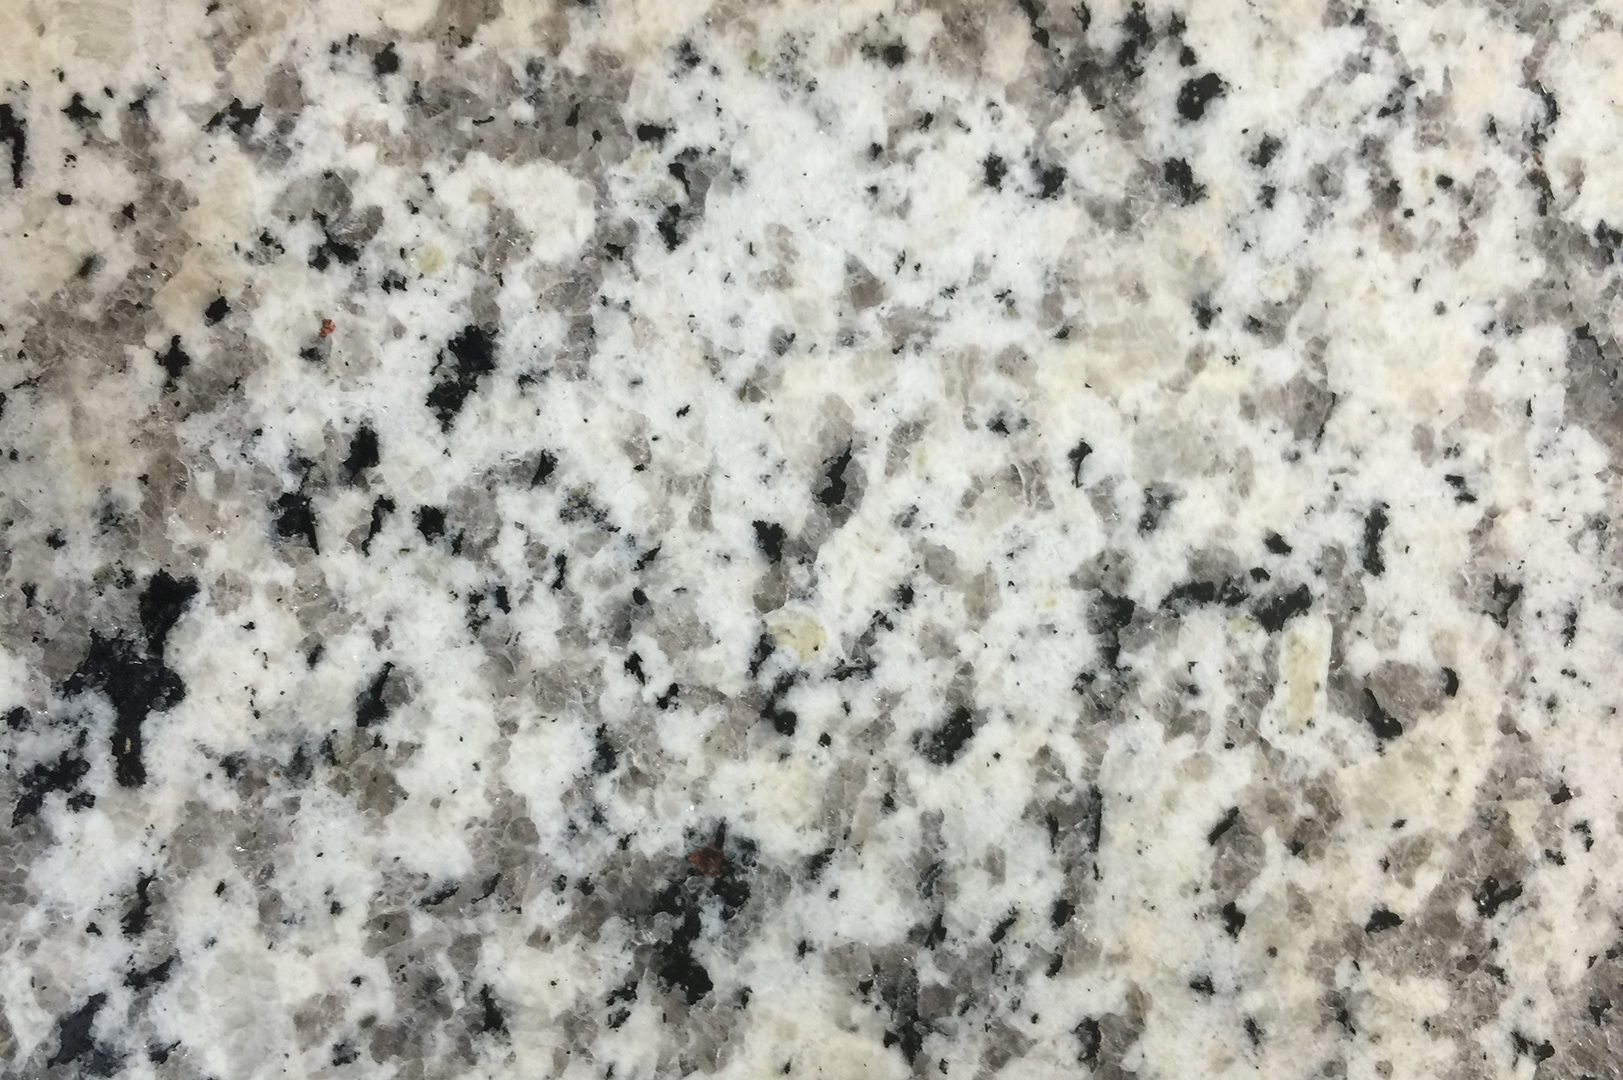 Granite Countertop Samples | Kansas City | Kenny's Tile